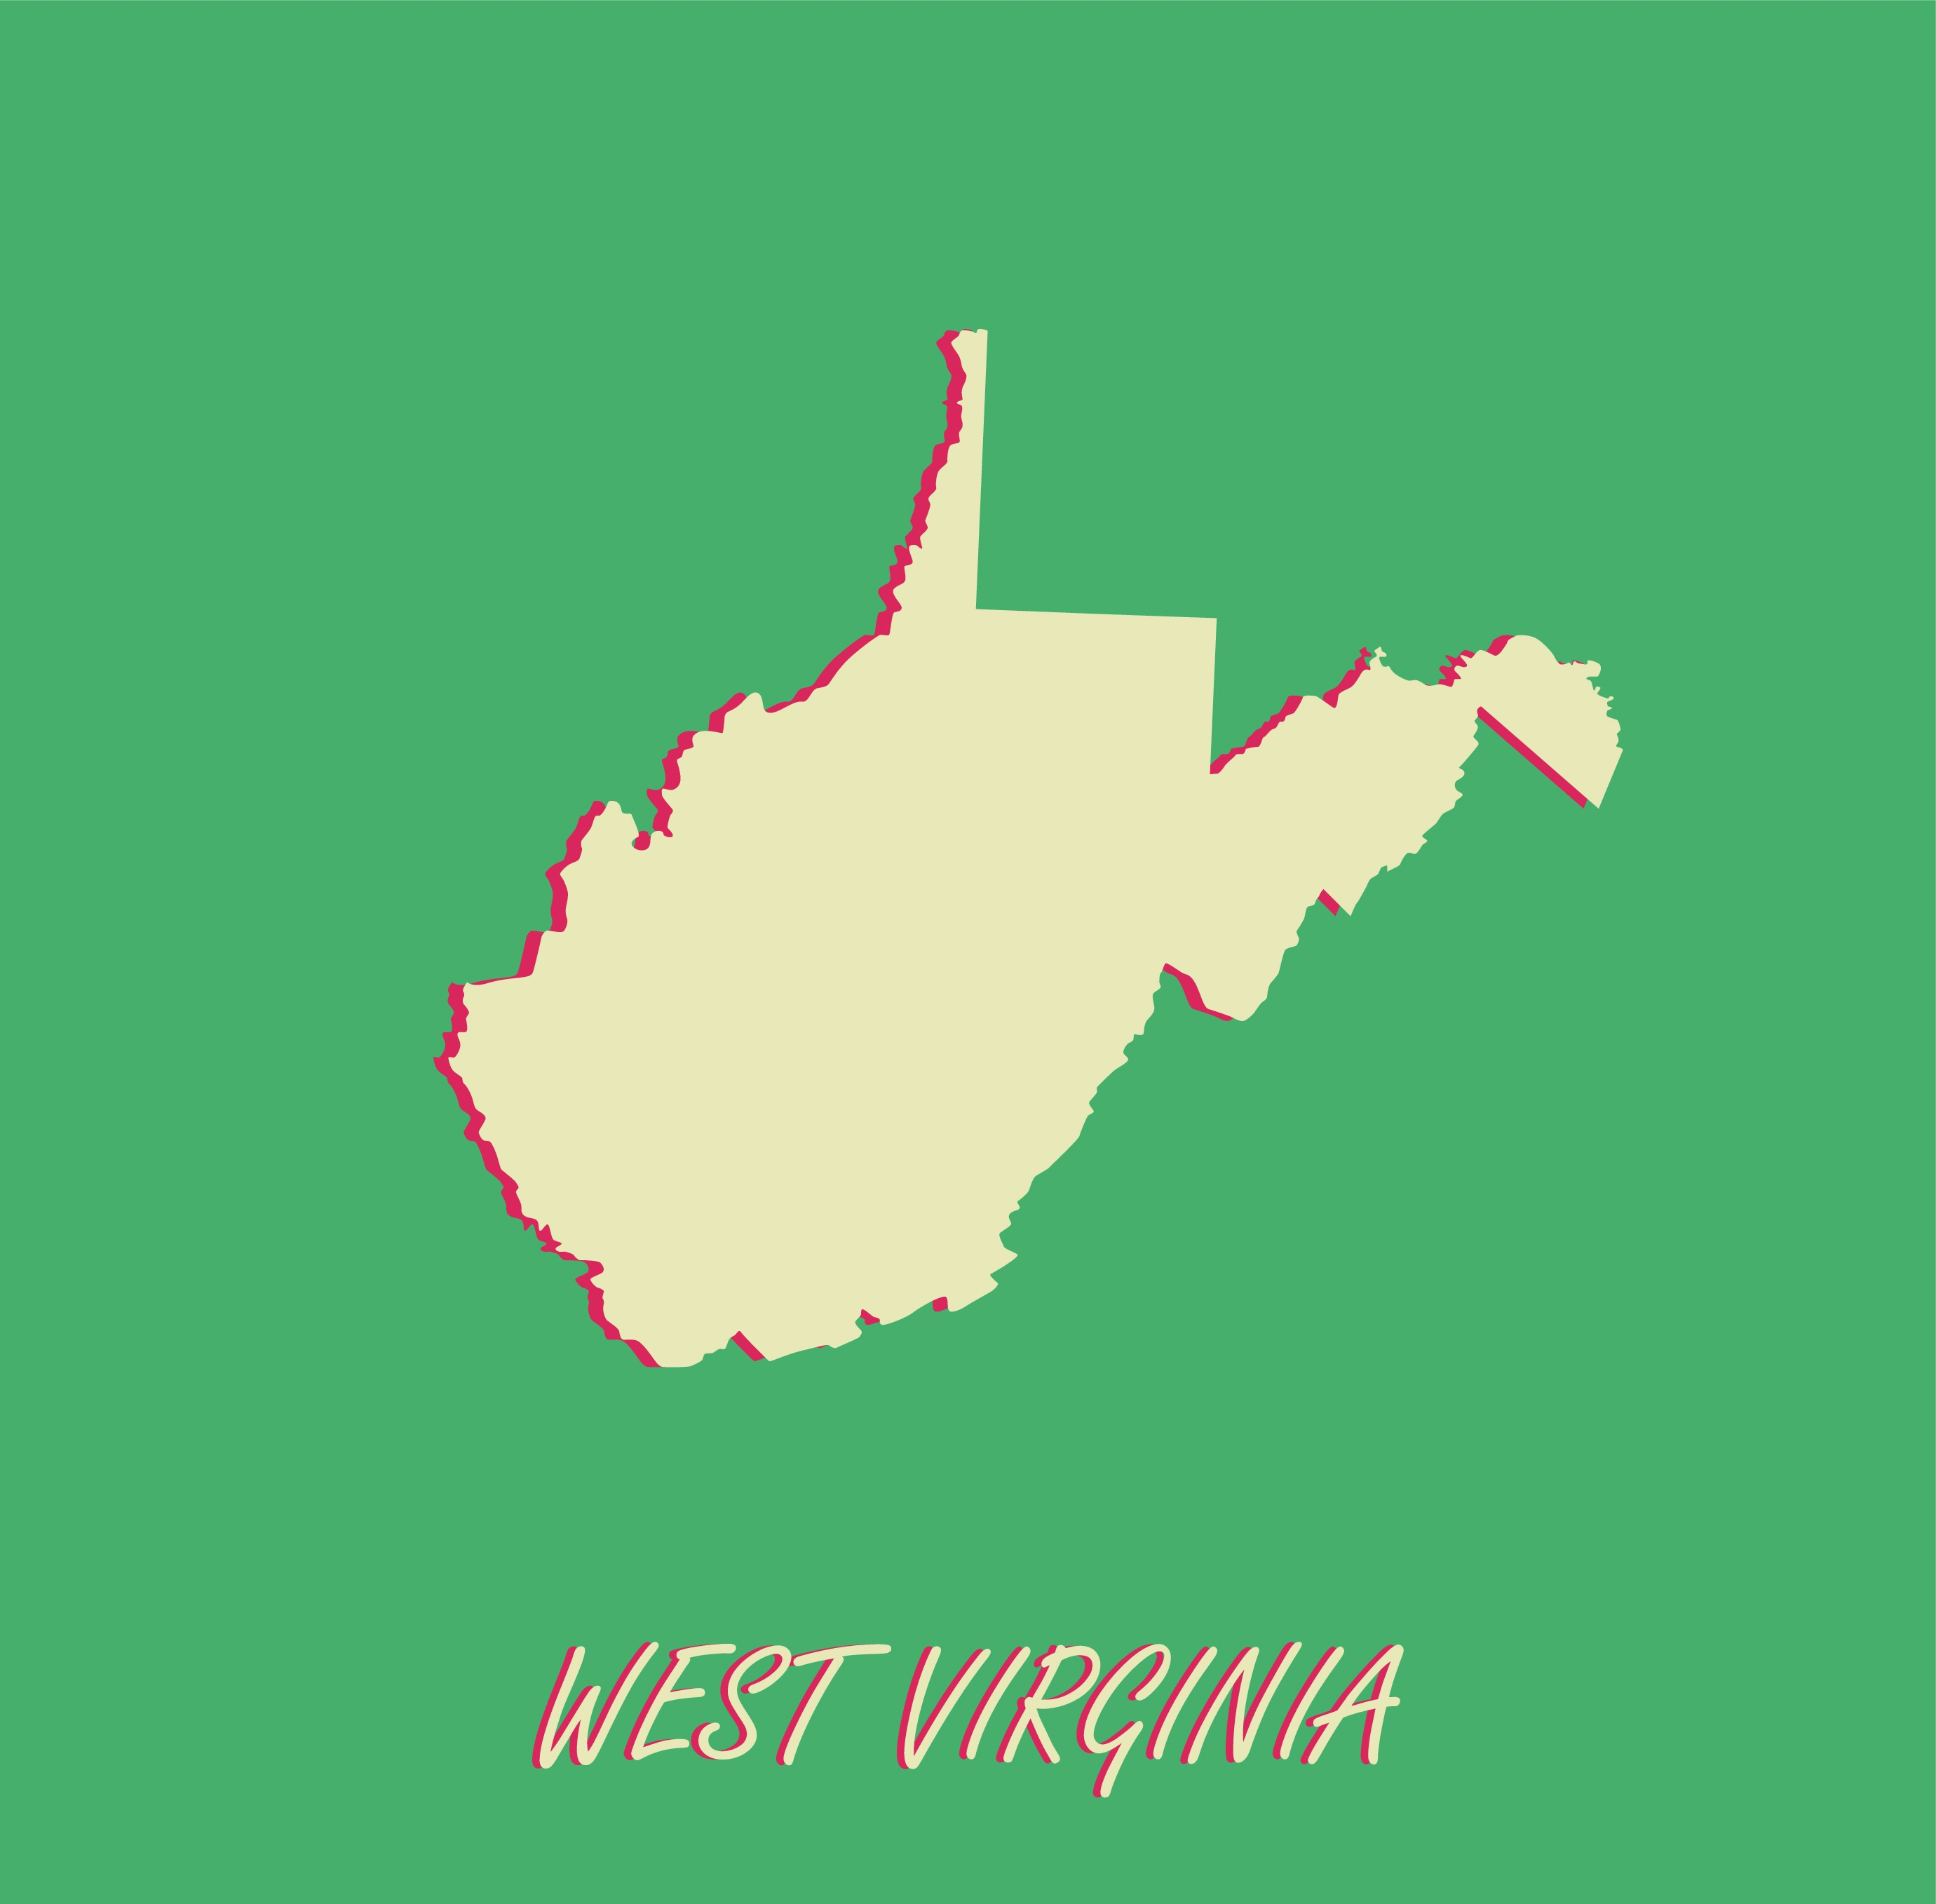 West Virginia Tax and Labor Law Summary - Care com HomePay